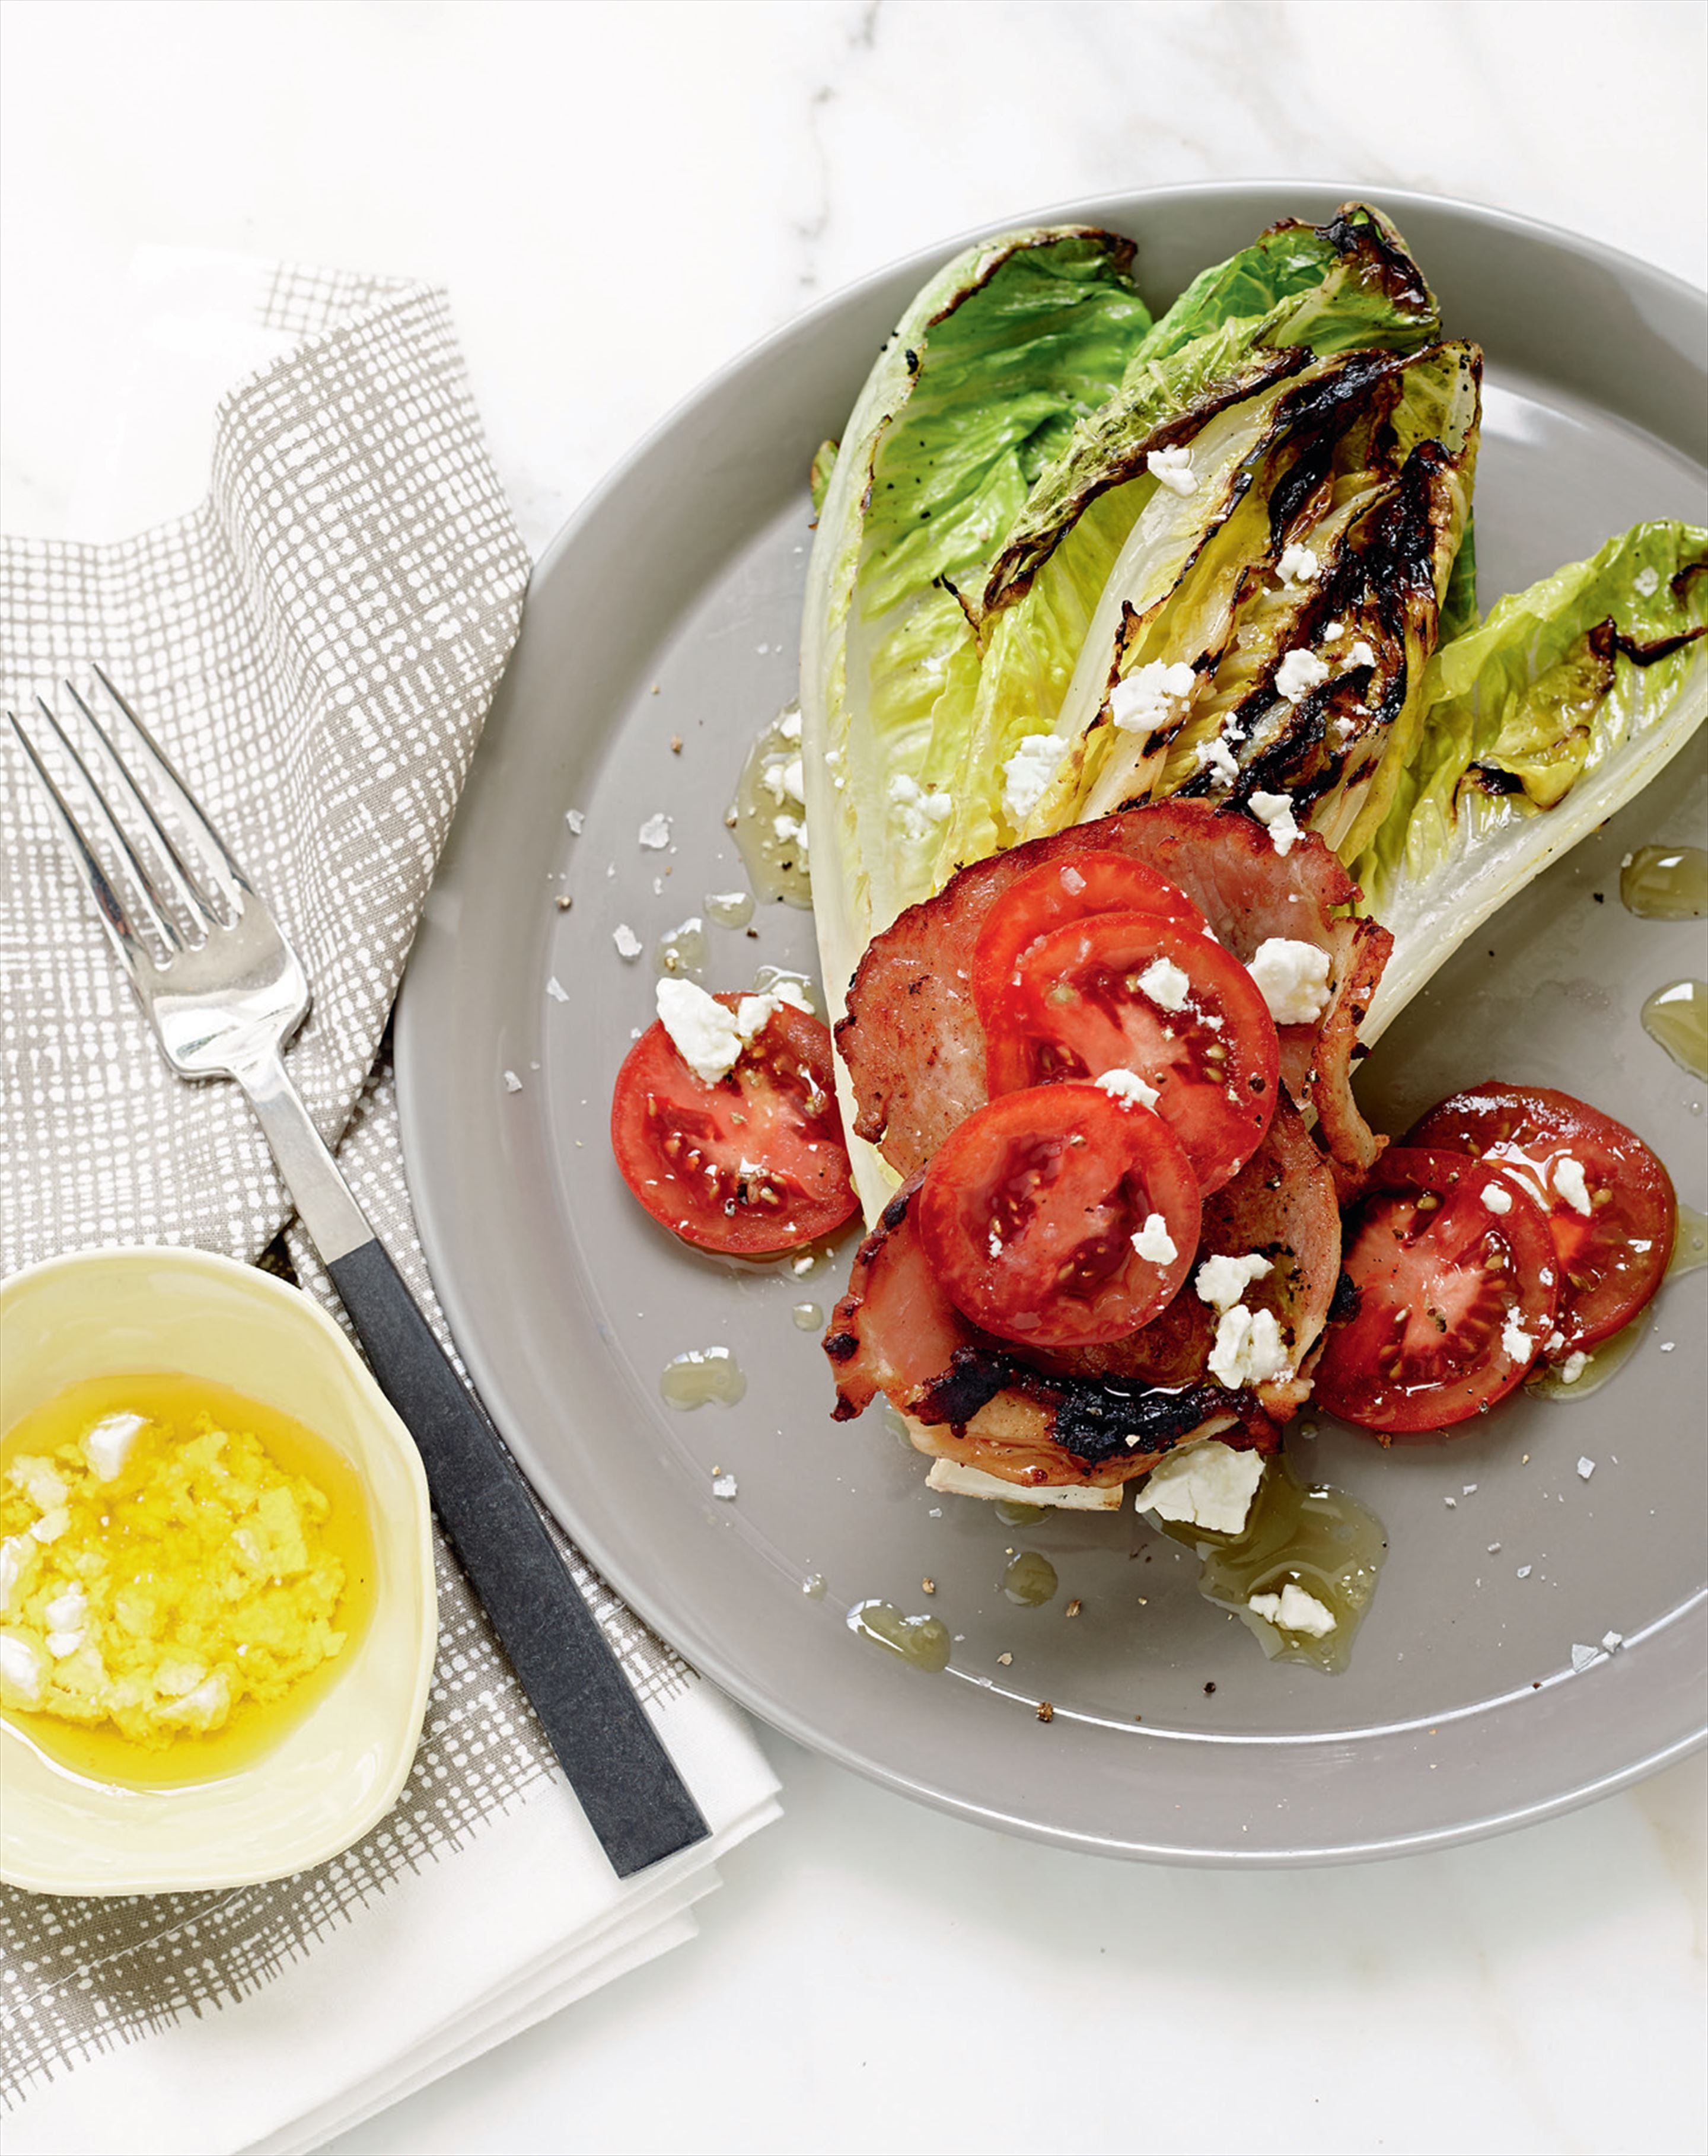 Grilled BLT salad